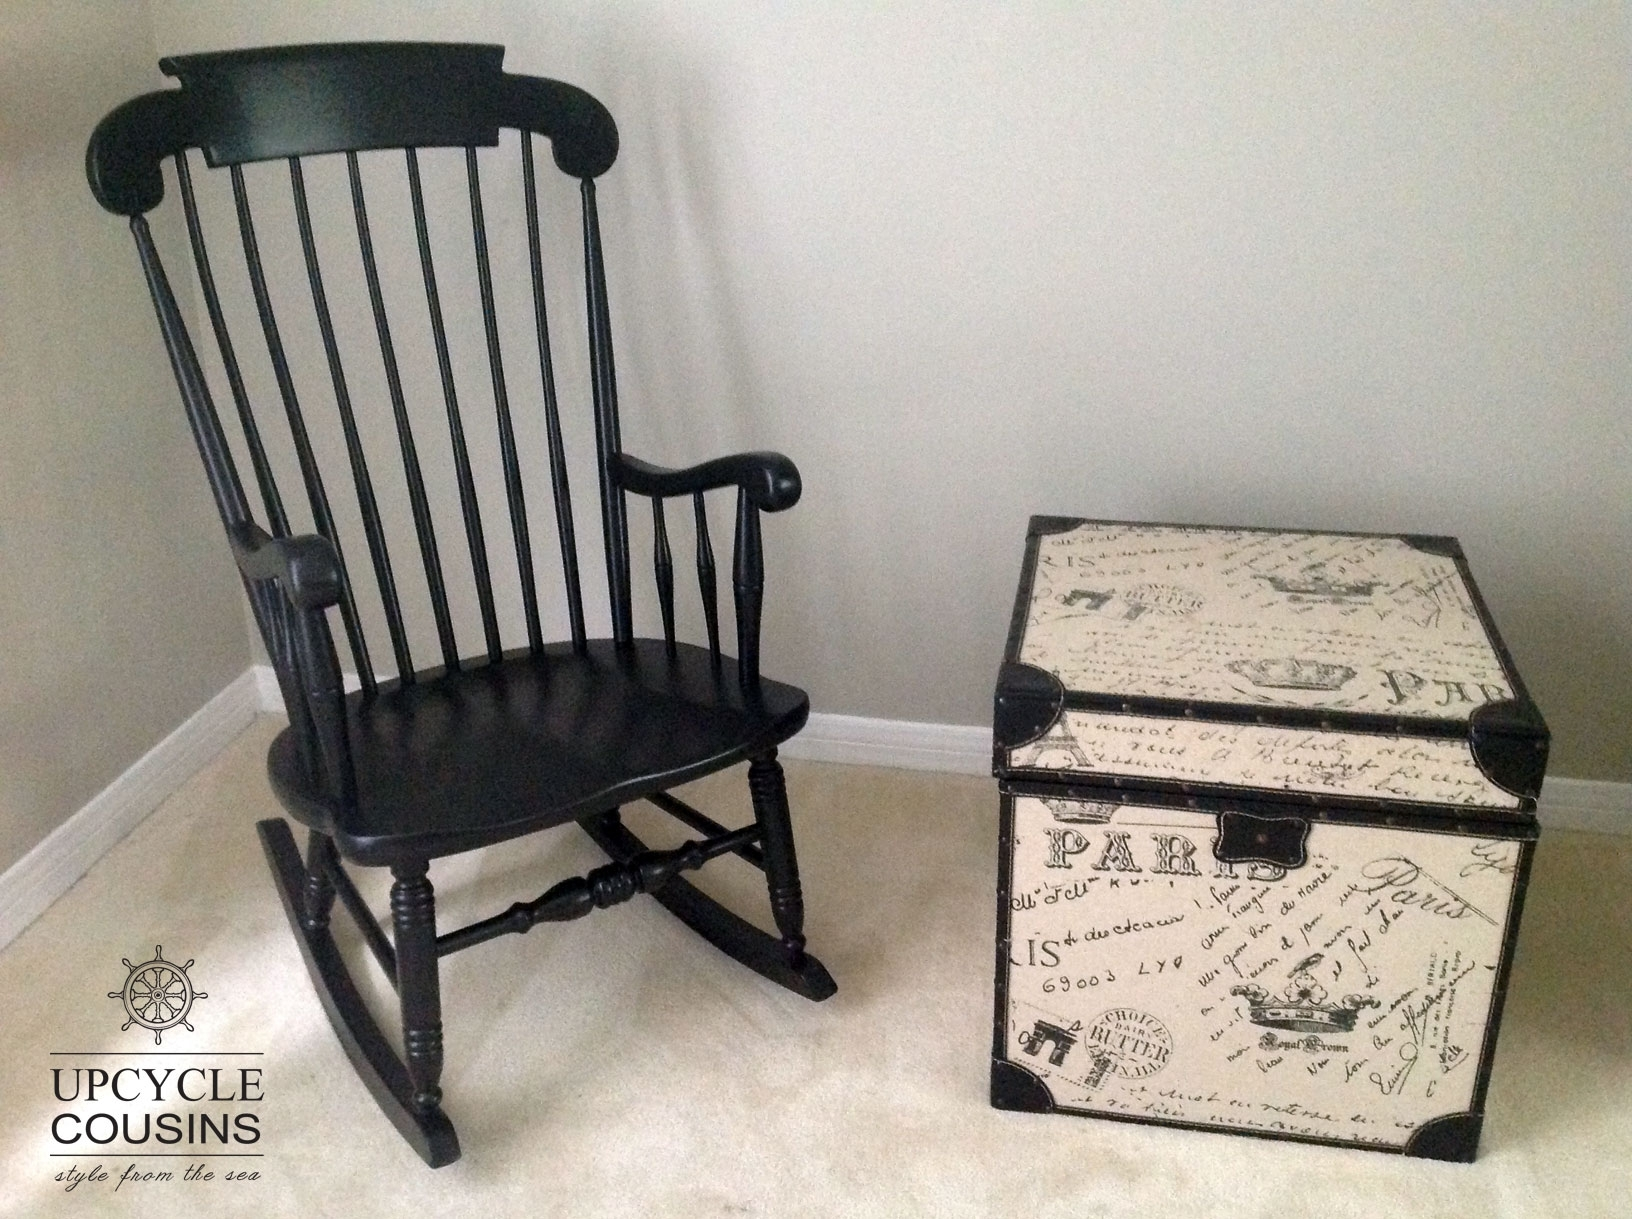 Cool Black Indoor/outdoor Rocking Chair | Upcycle Cousins With Regard To Upcycled Rocking Chairs (View 4 of 15)